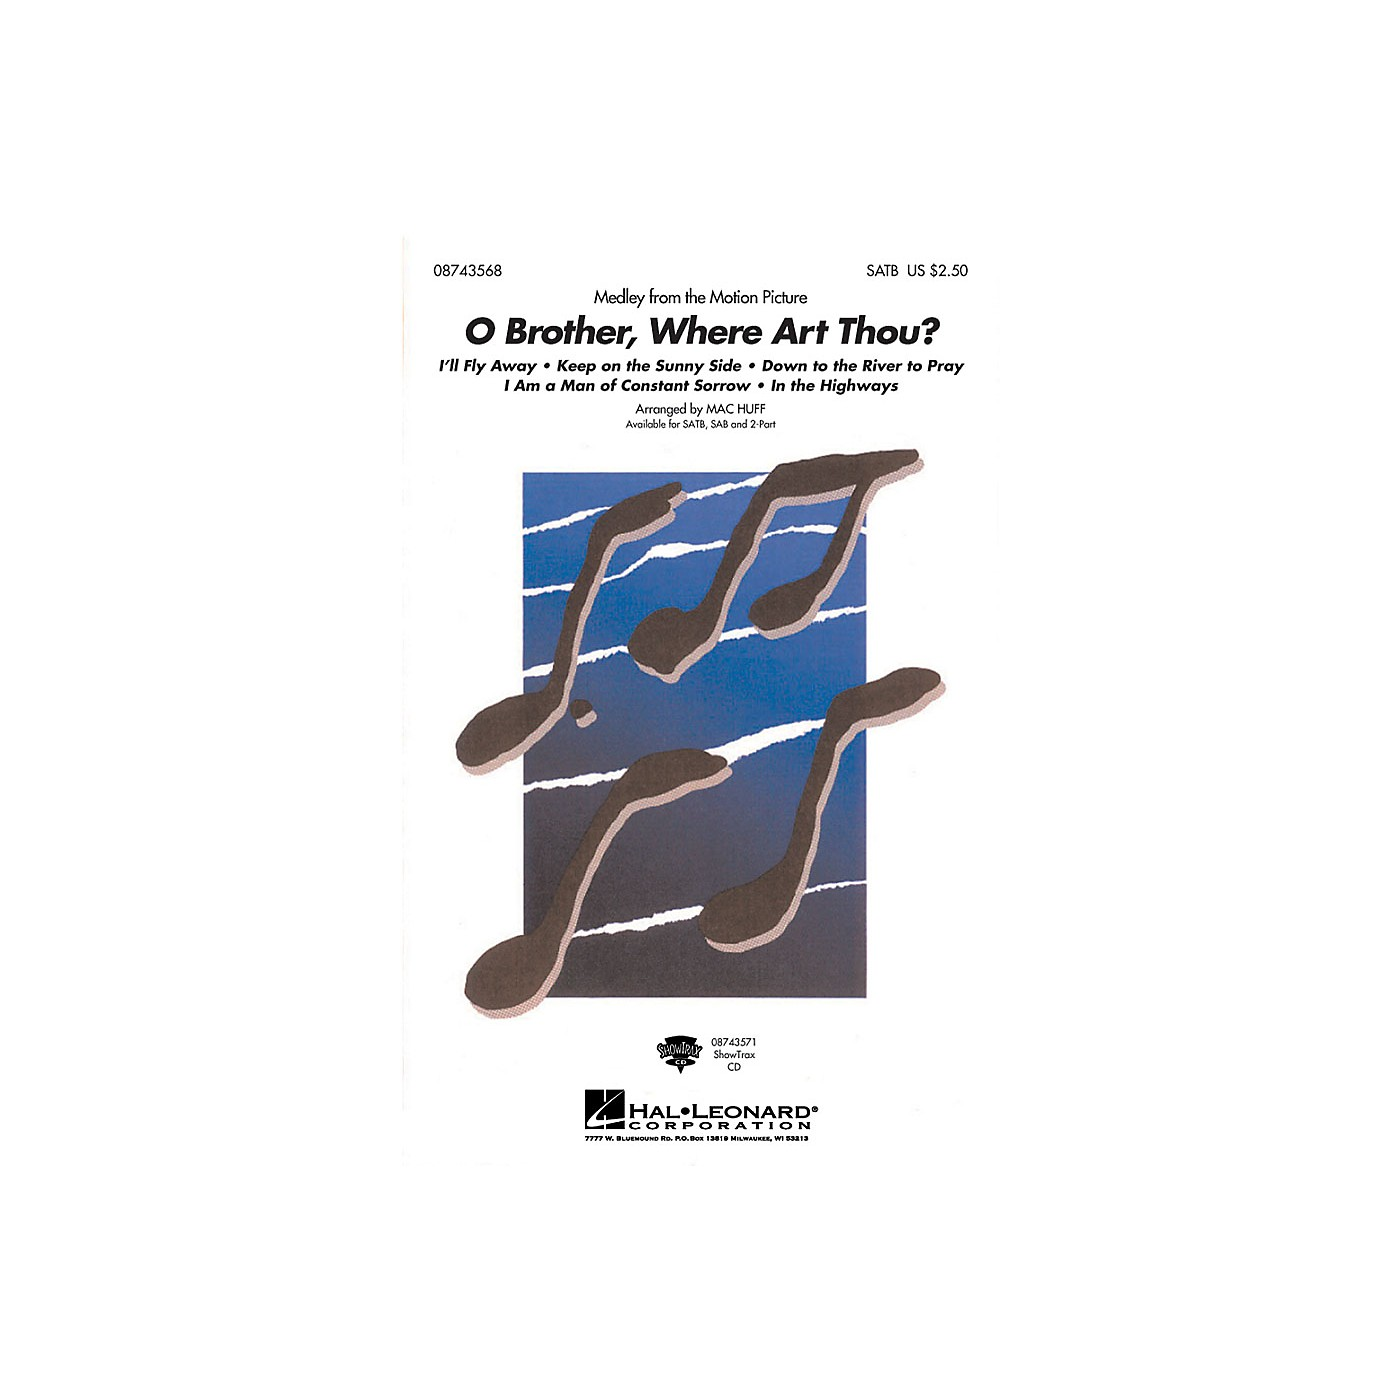 Hal Leonard O Brother, Where Art Thou? (Medley) 2-Part Arranged by M Huff thumbnail